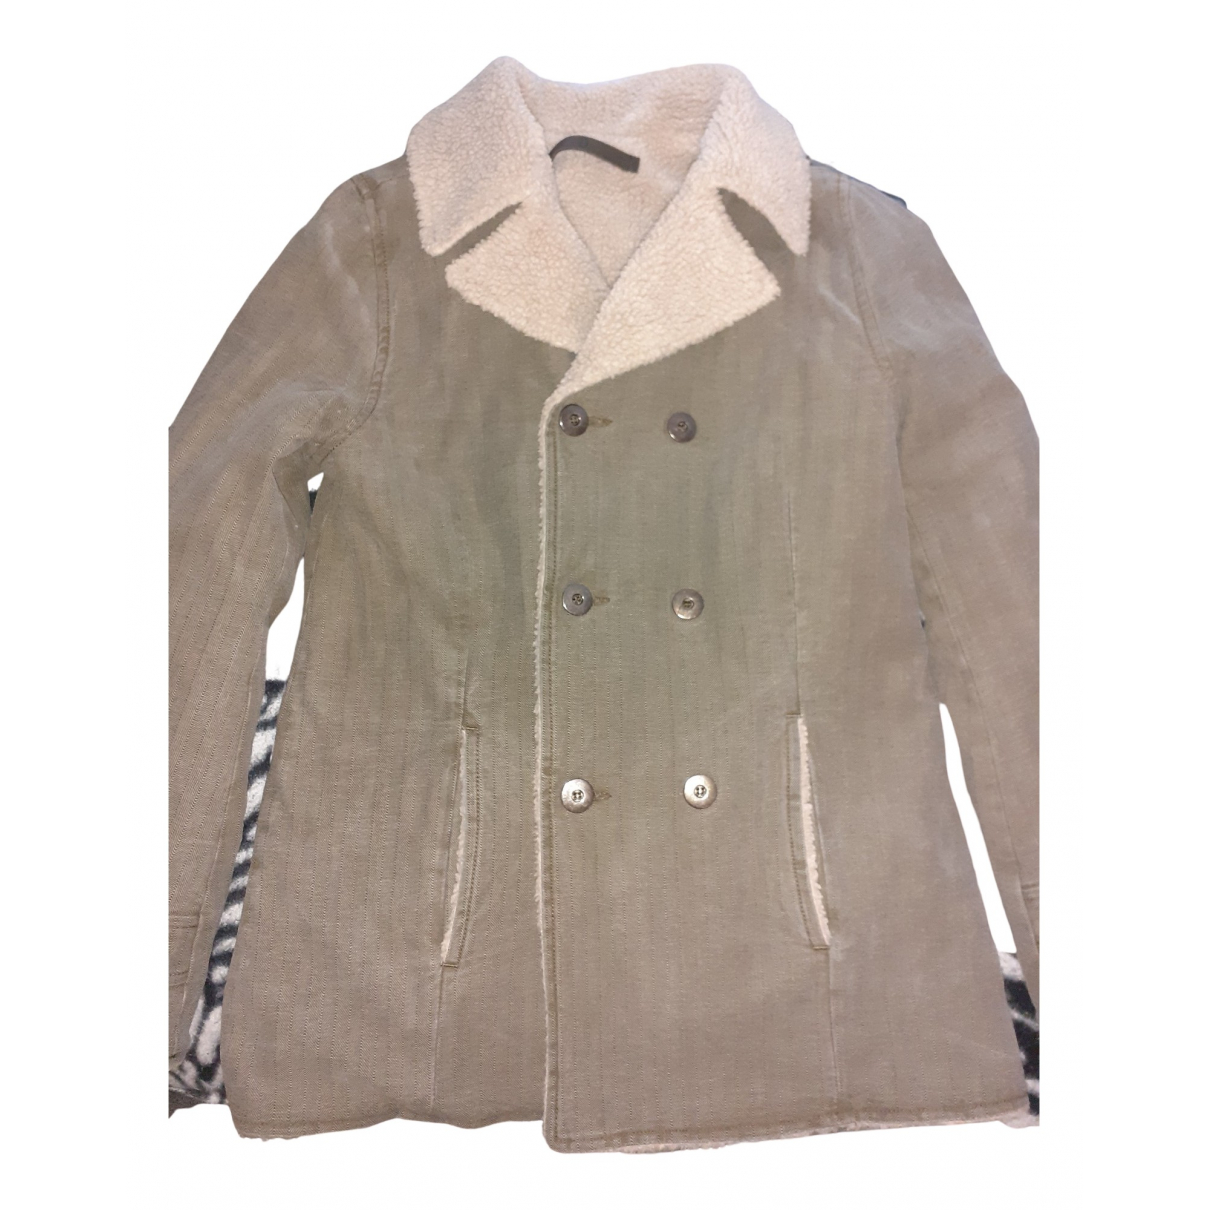 Dondup N Beige Cotton jacket & coat for Kids 12 years - XS FR